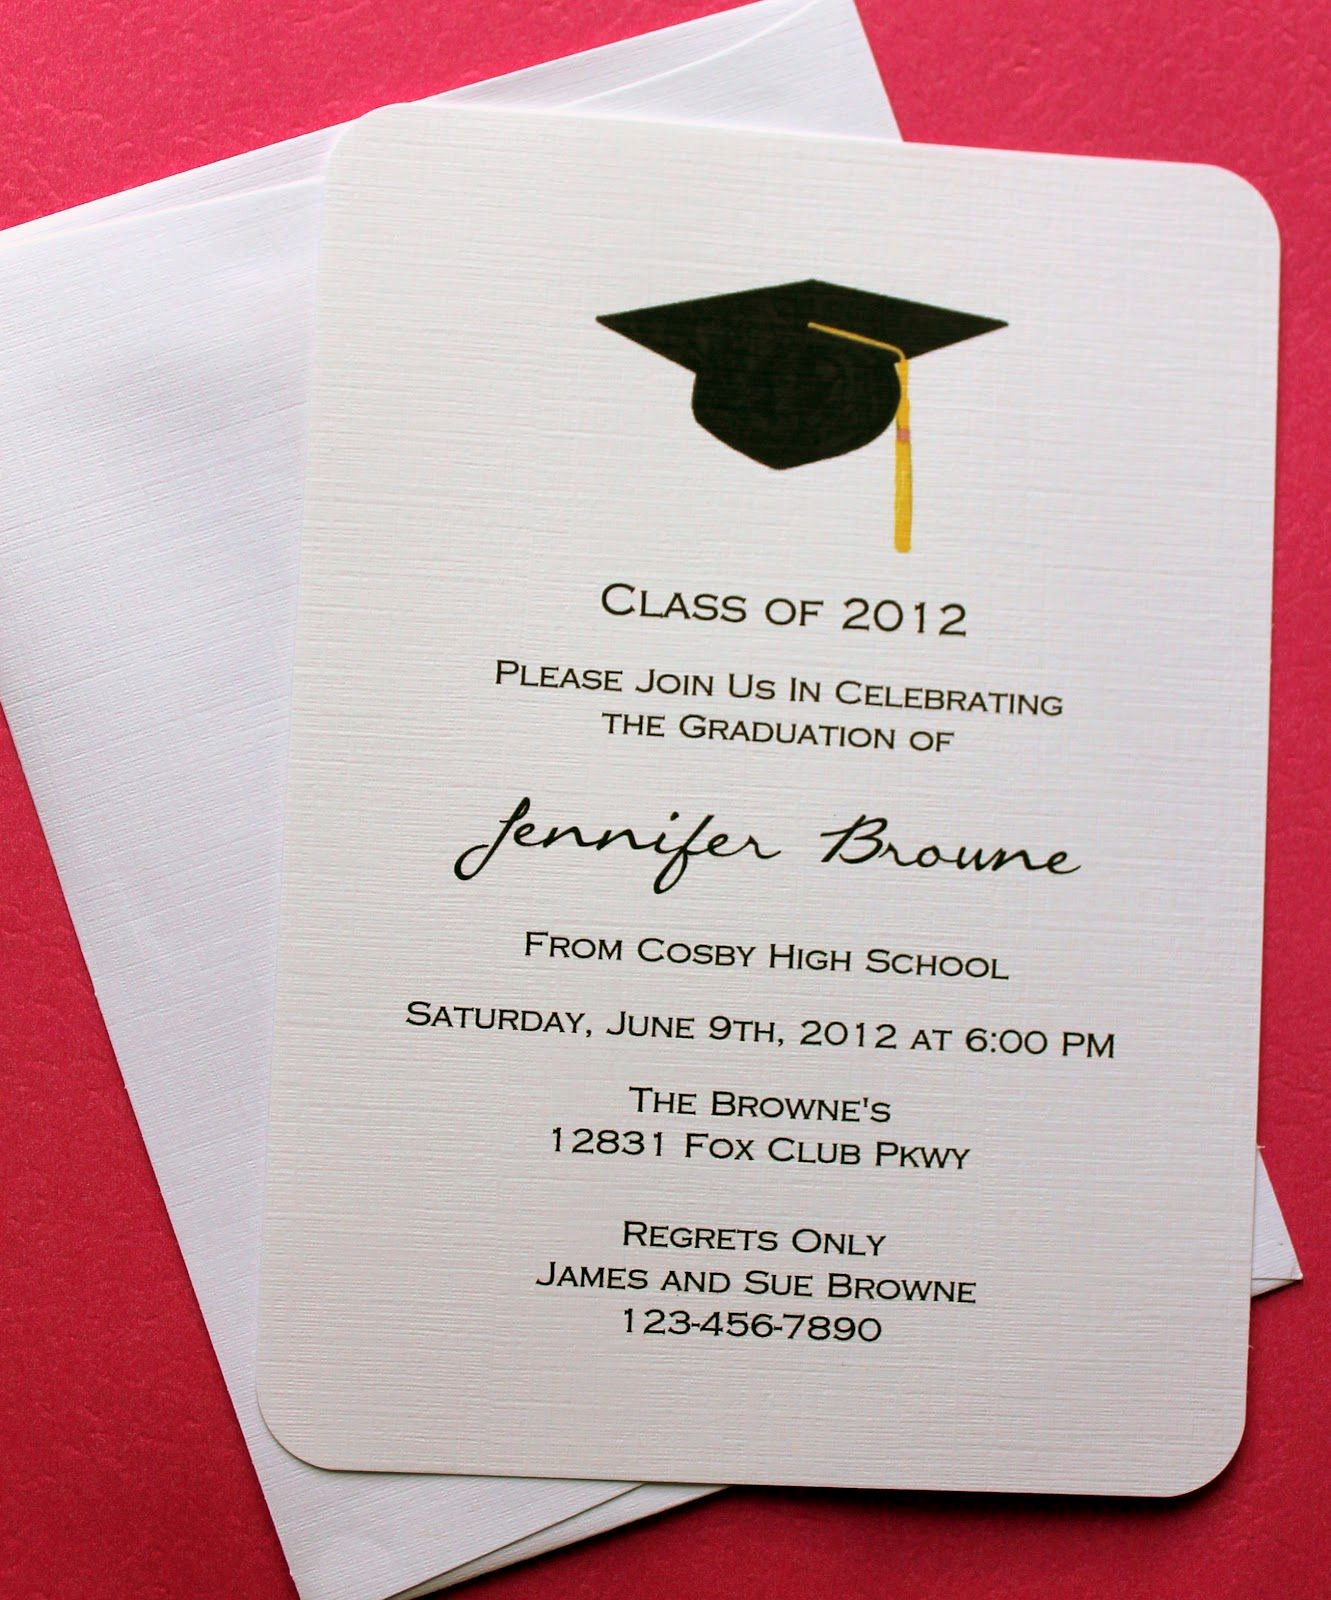 Graduation Invitation Templates Free Download Unique Graduation Invitation Template Graduation Invitation Templates Card Invitation Templates